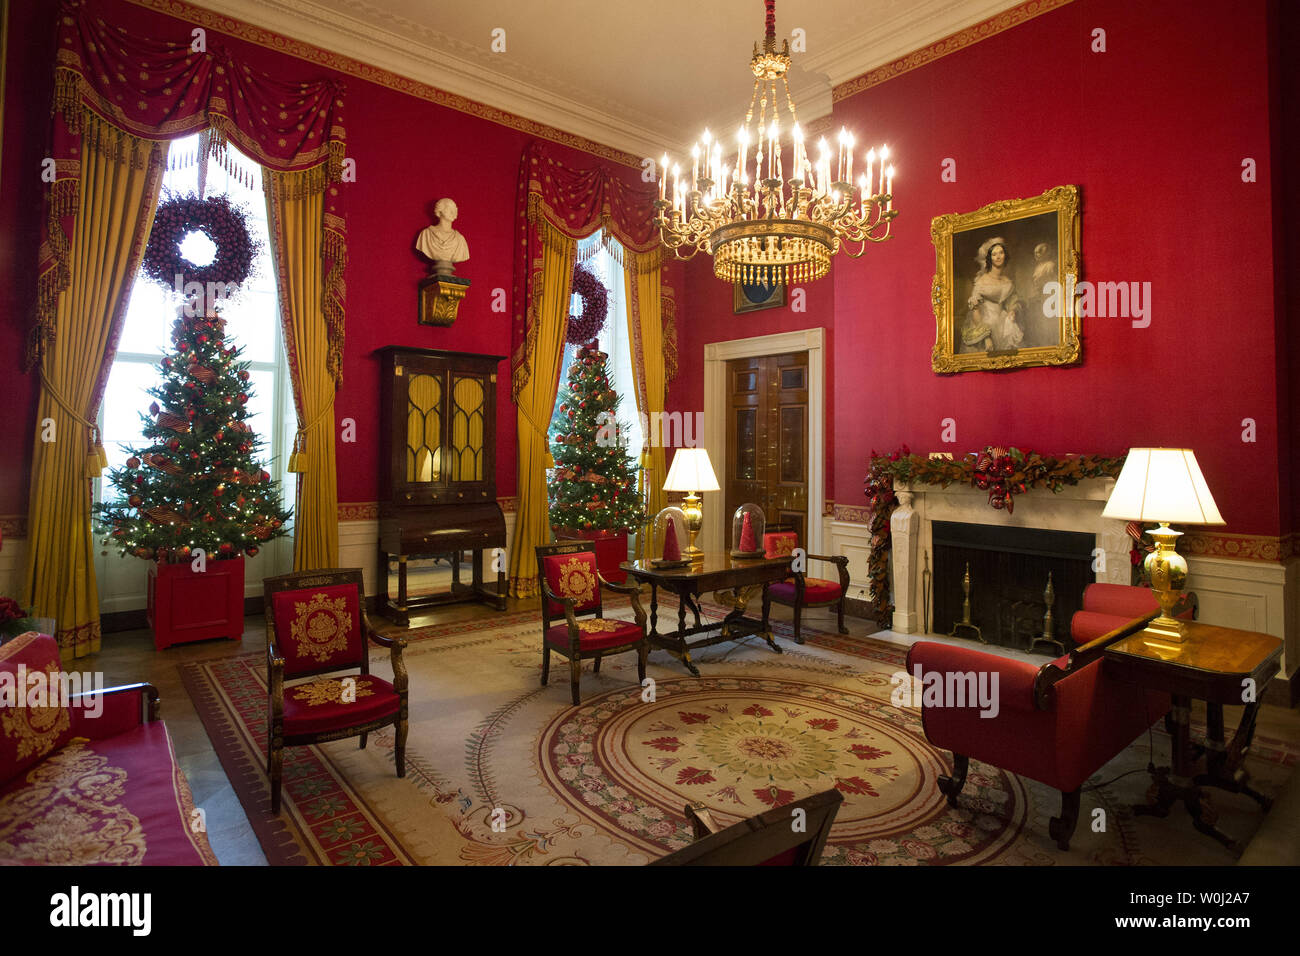 The Red Room is seen decorated during a holiday tour at the White House in Washington, D.C. on December 2, 2015. This year's team is 'A Timeless Tradition, and reflects long-held traditions cherished across America and commemorates extradorinaiy moments that help shaped the county. Photo by Kevin Dietsch/UPI. - Stock Image